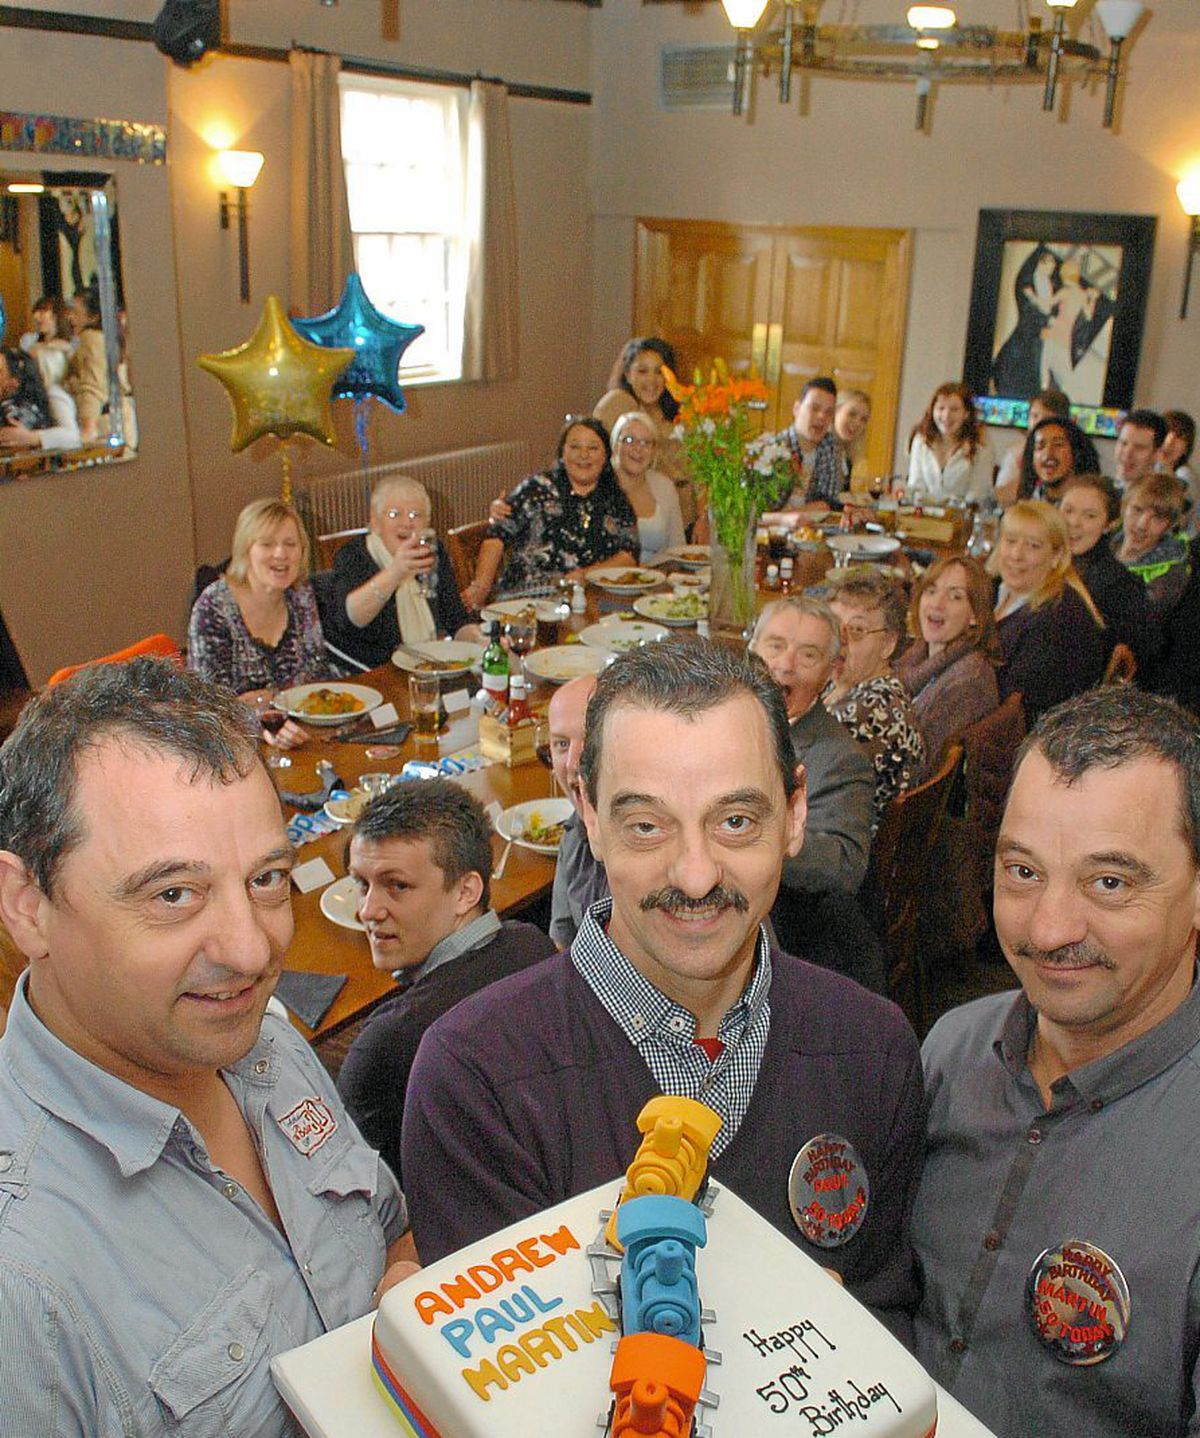 Andrew, Paul, and Martin Tunney celebrating their 50th birthday at The Crown in Bridgnorth in 2011